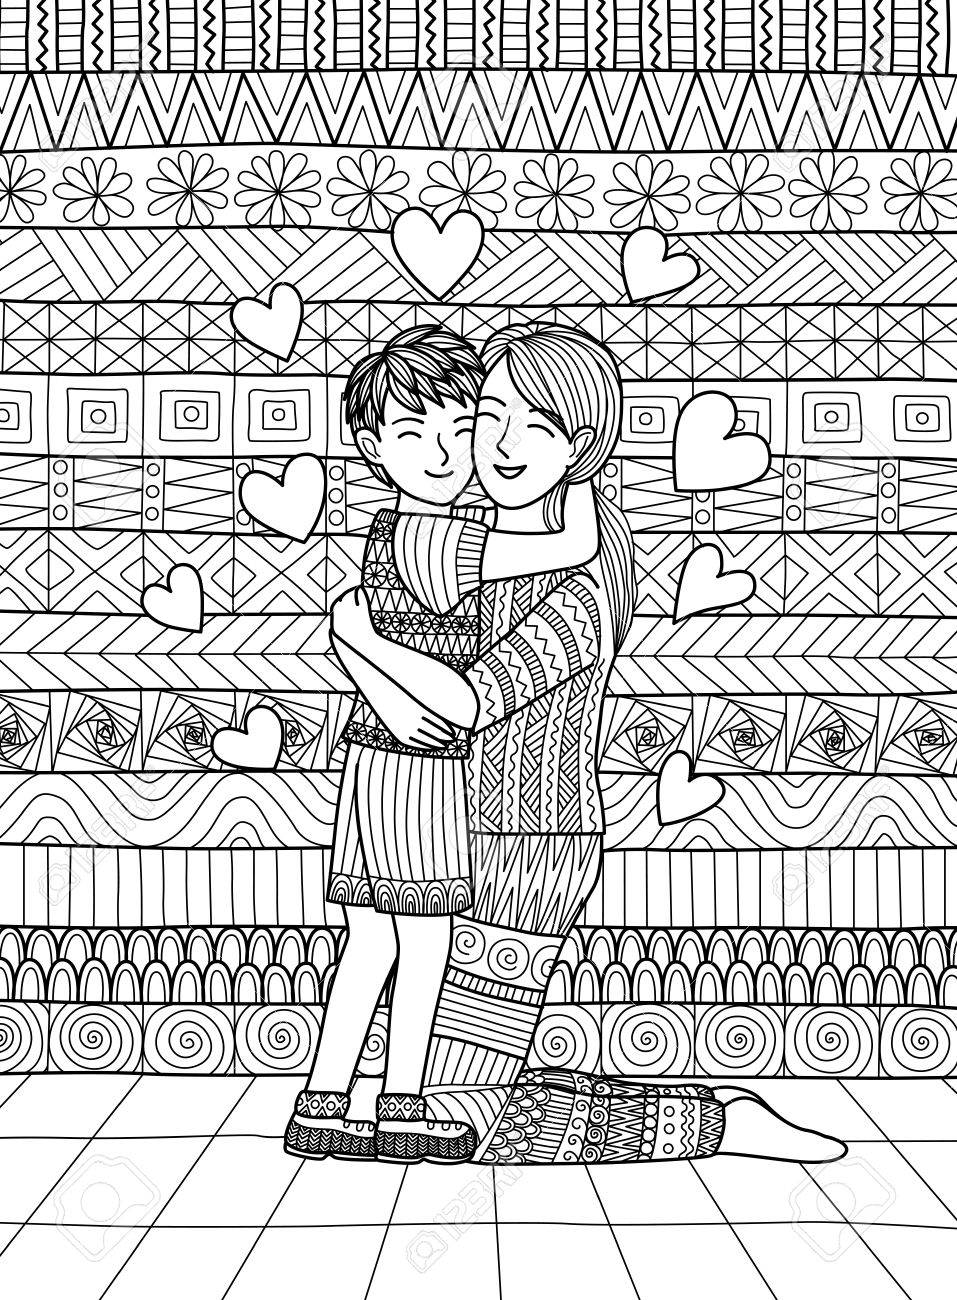 The coloring book clean - Son And Mom Squeezing And Showing Love Clean Lines Doodle Design For Coloring Book For